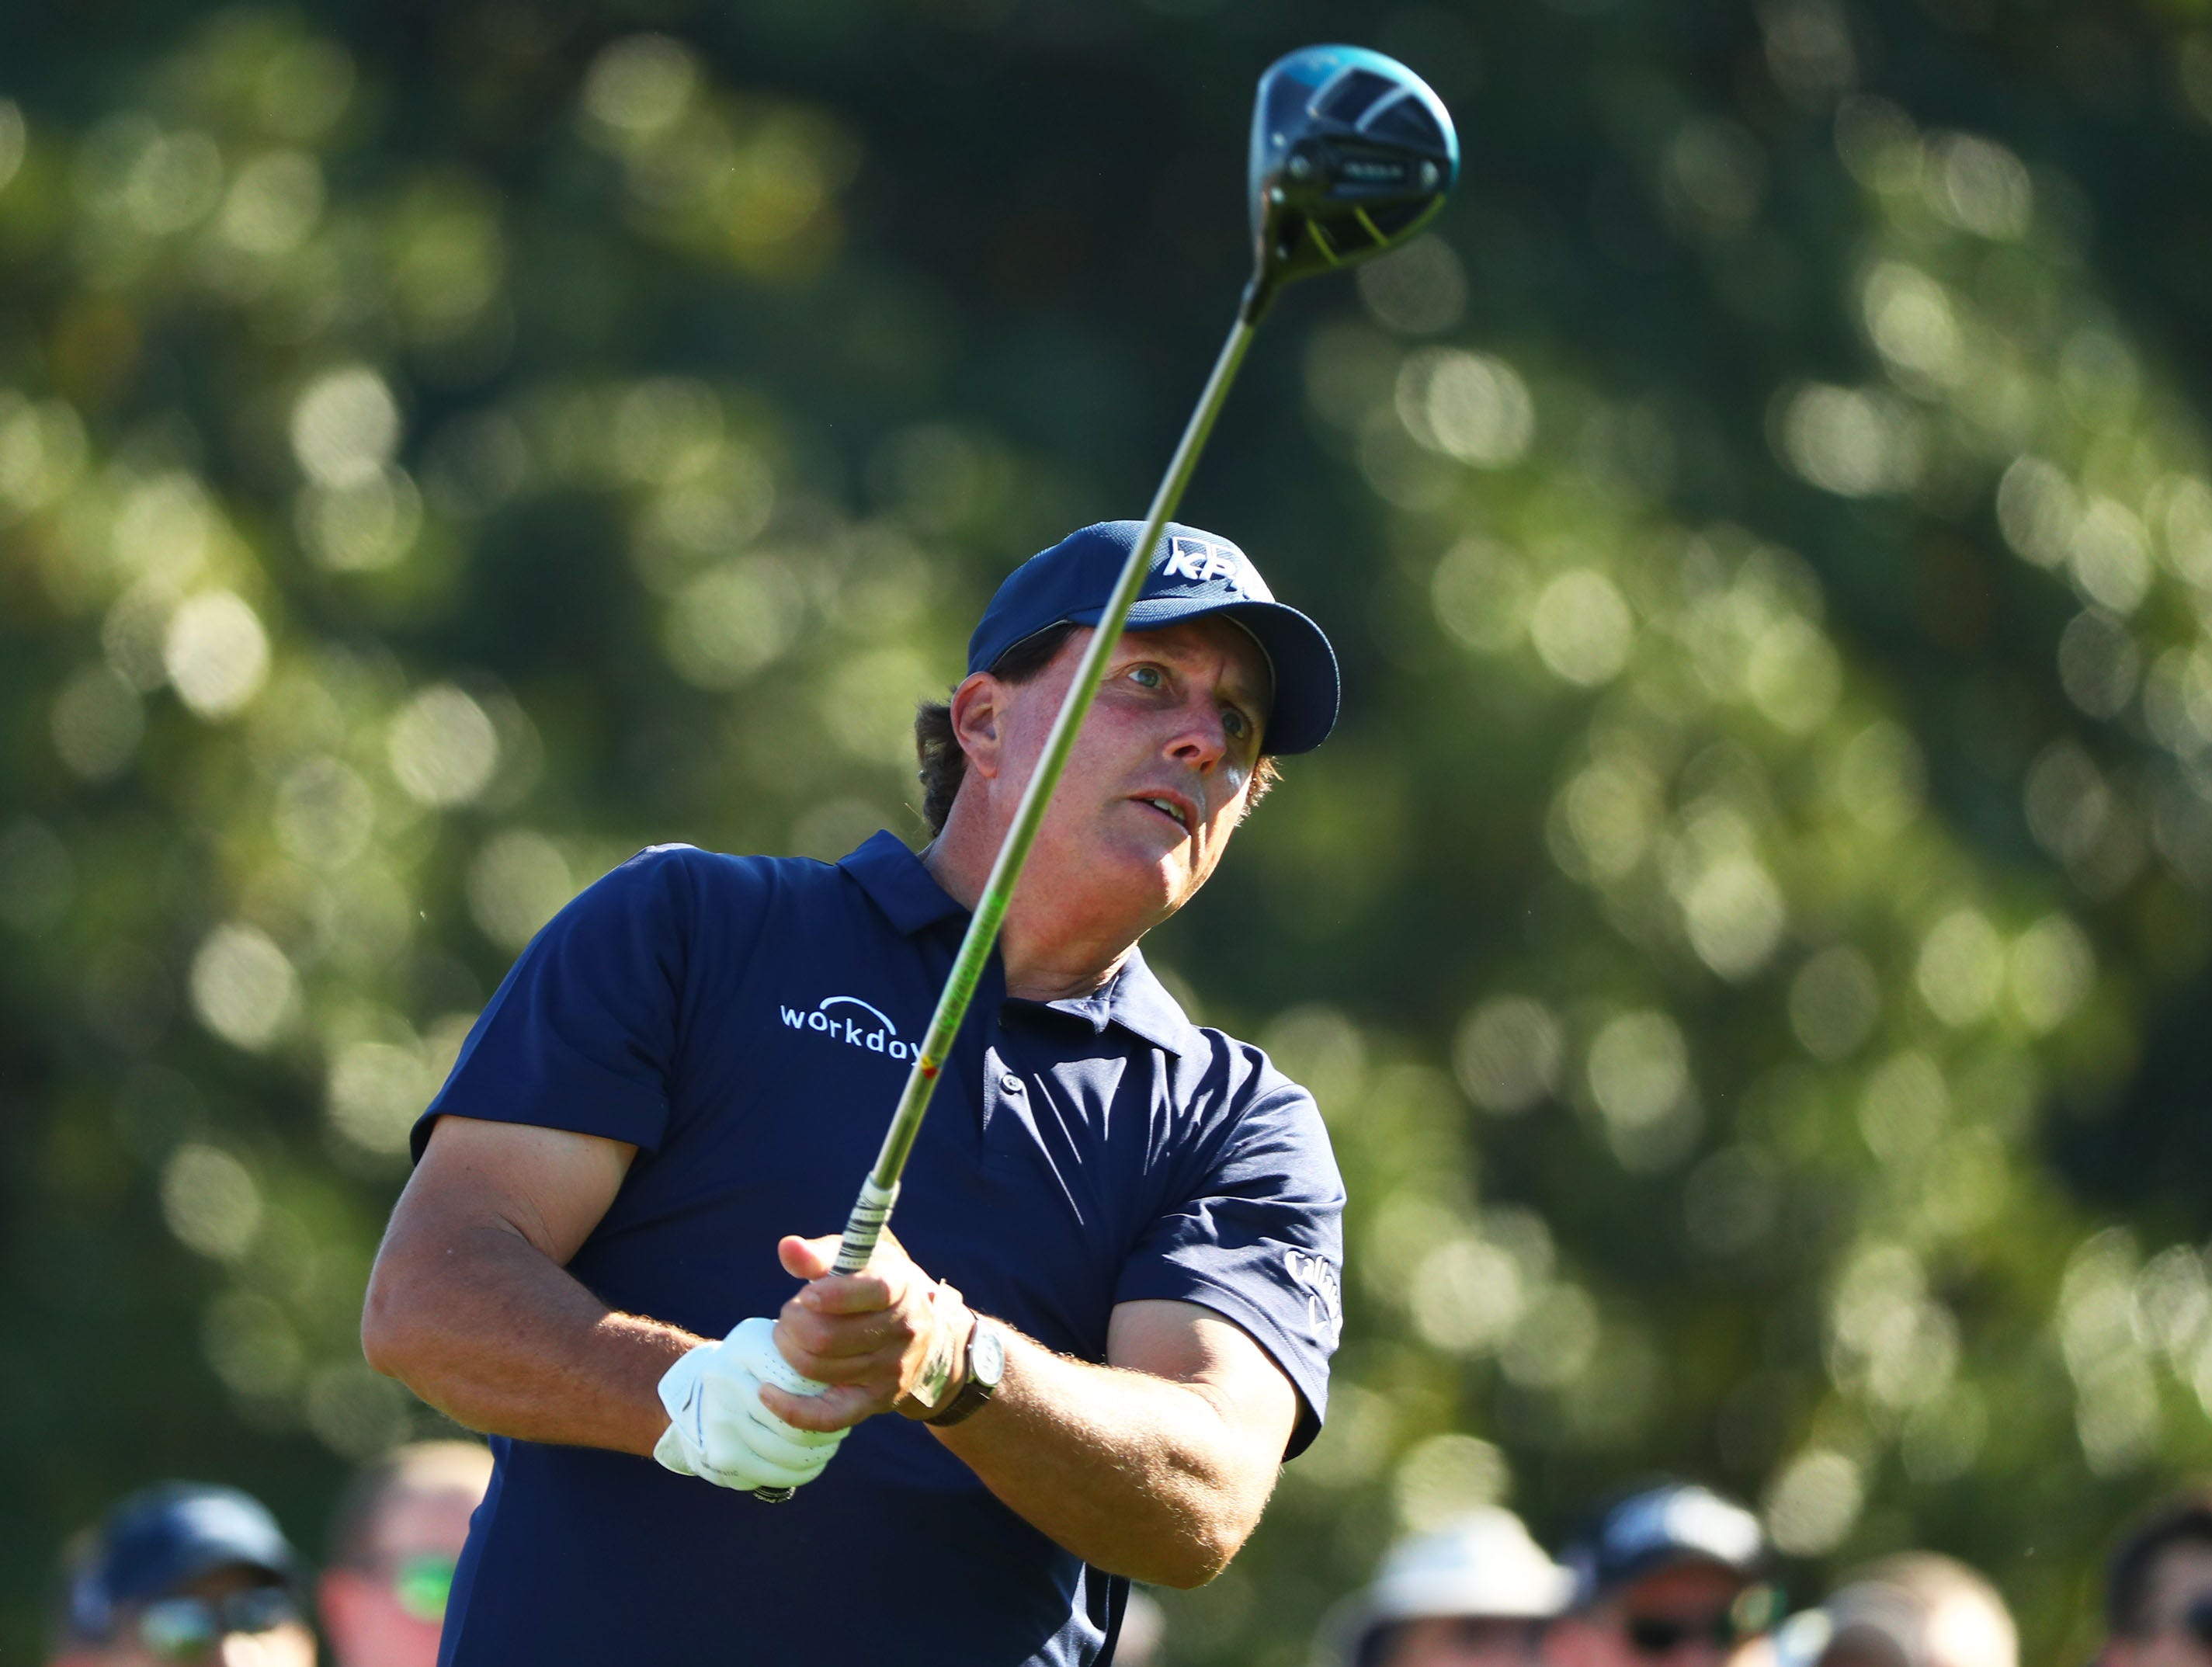 Apr 10, 2019; Augusta, GA, USA; Masters champion Phil Mickelson plays his drive at the 10th hole during a practice round for The Masters golf tournament at Augusta National Golf Club. Mandatory Credit: Rob Schumacher-USA TODAY Sports